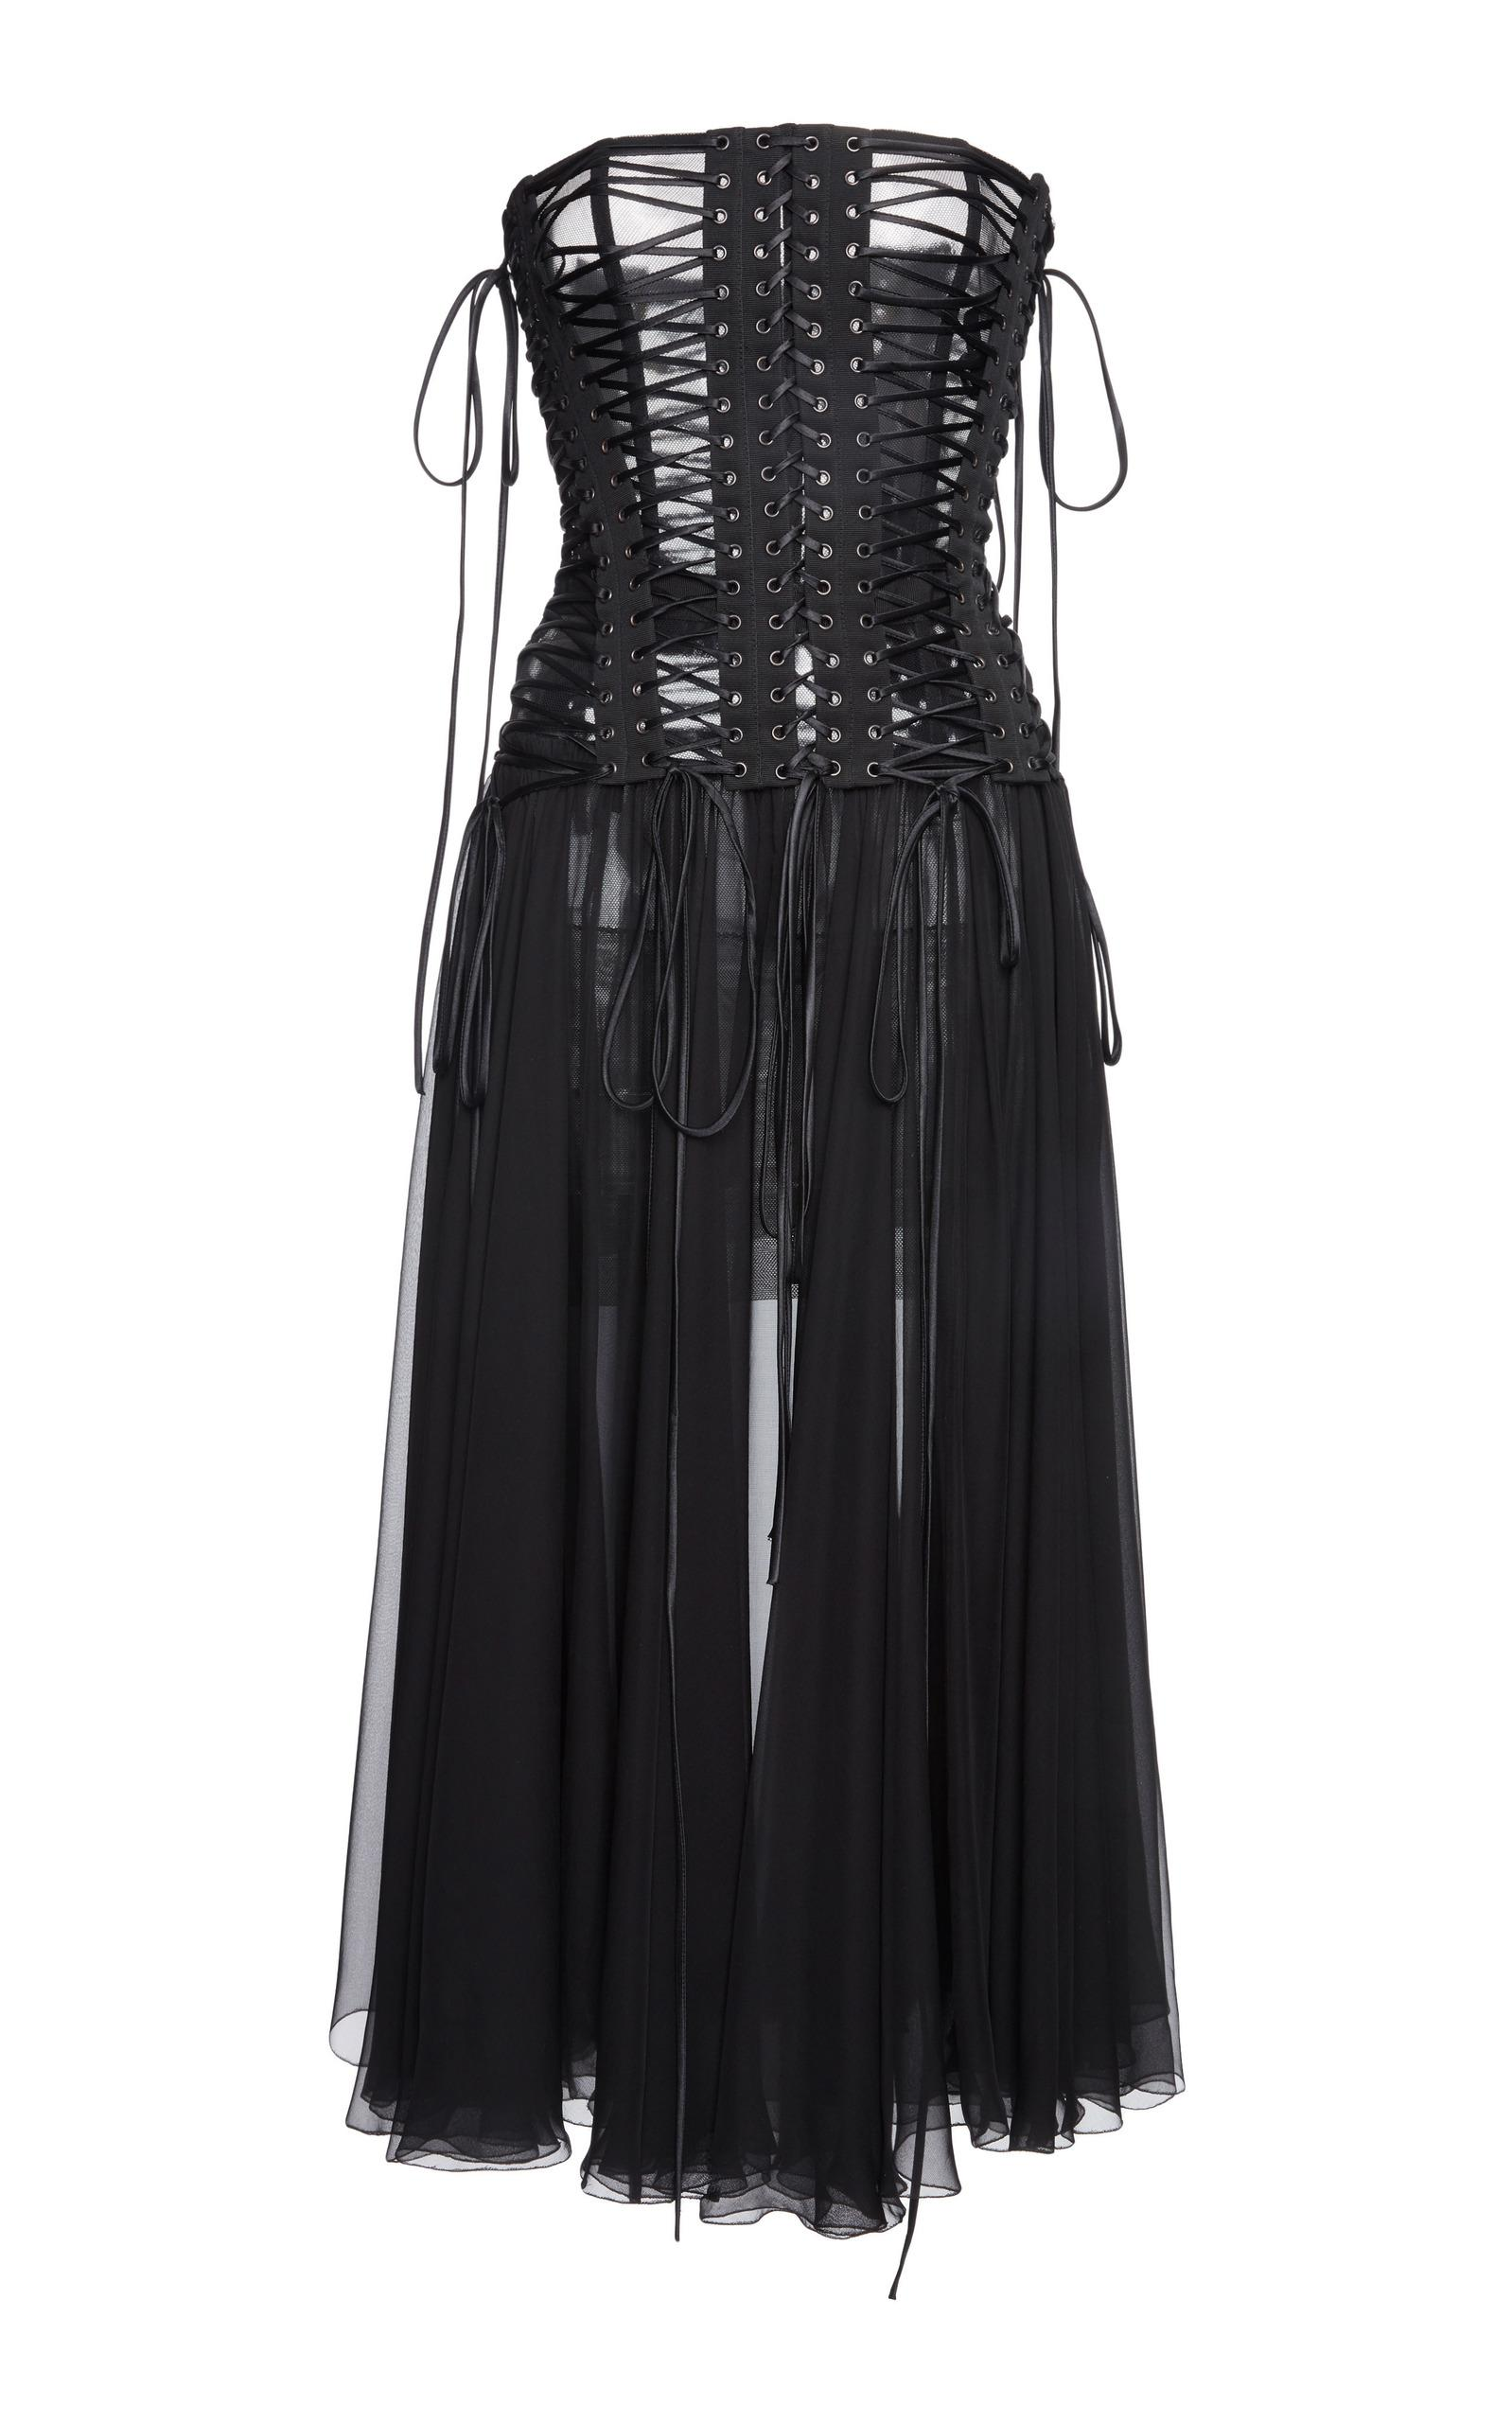 Dolce & Gabbana Laced Corset Bandeau Dress In Black